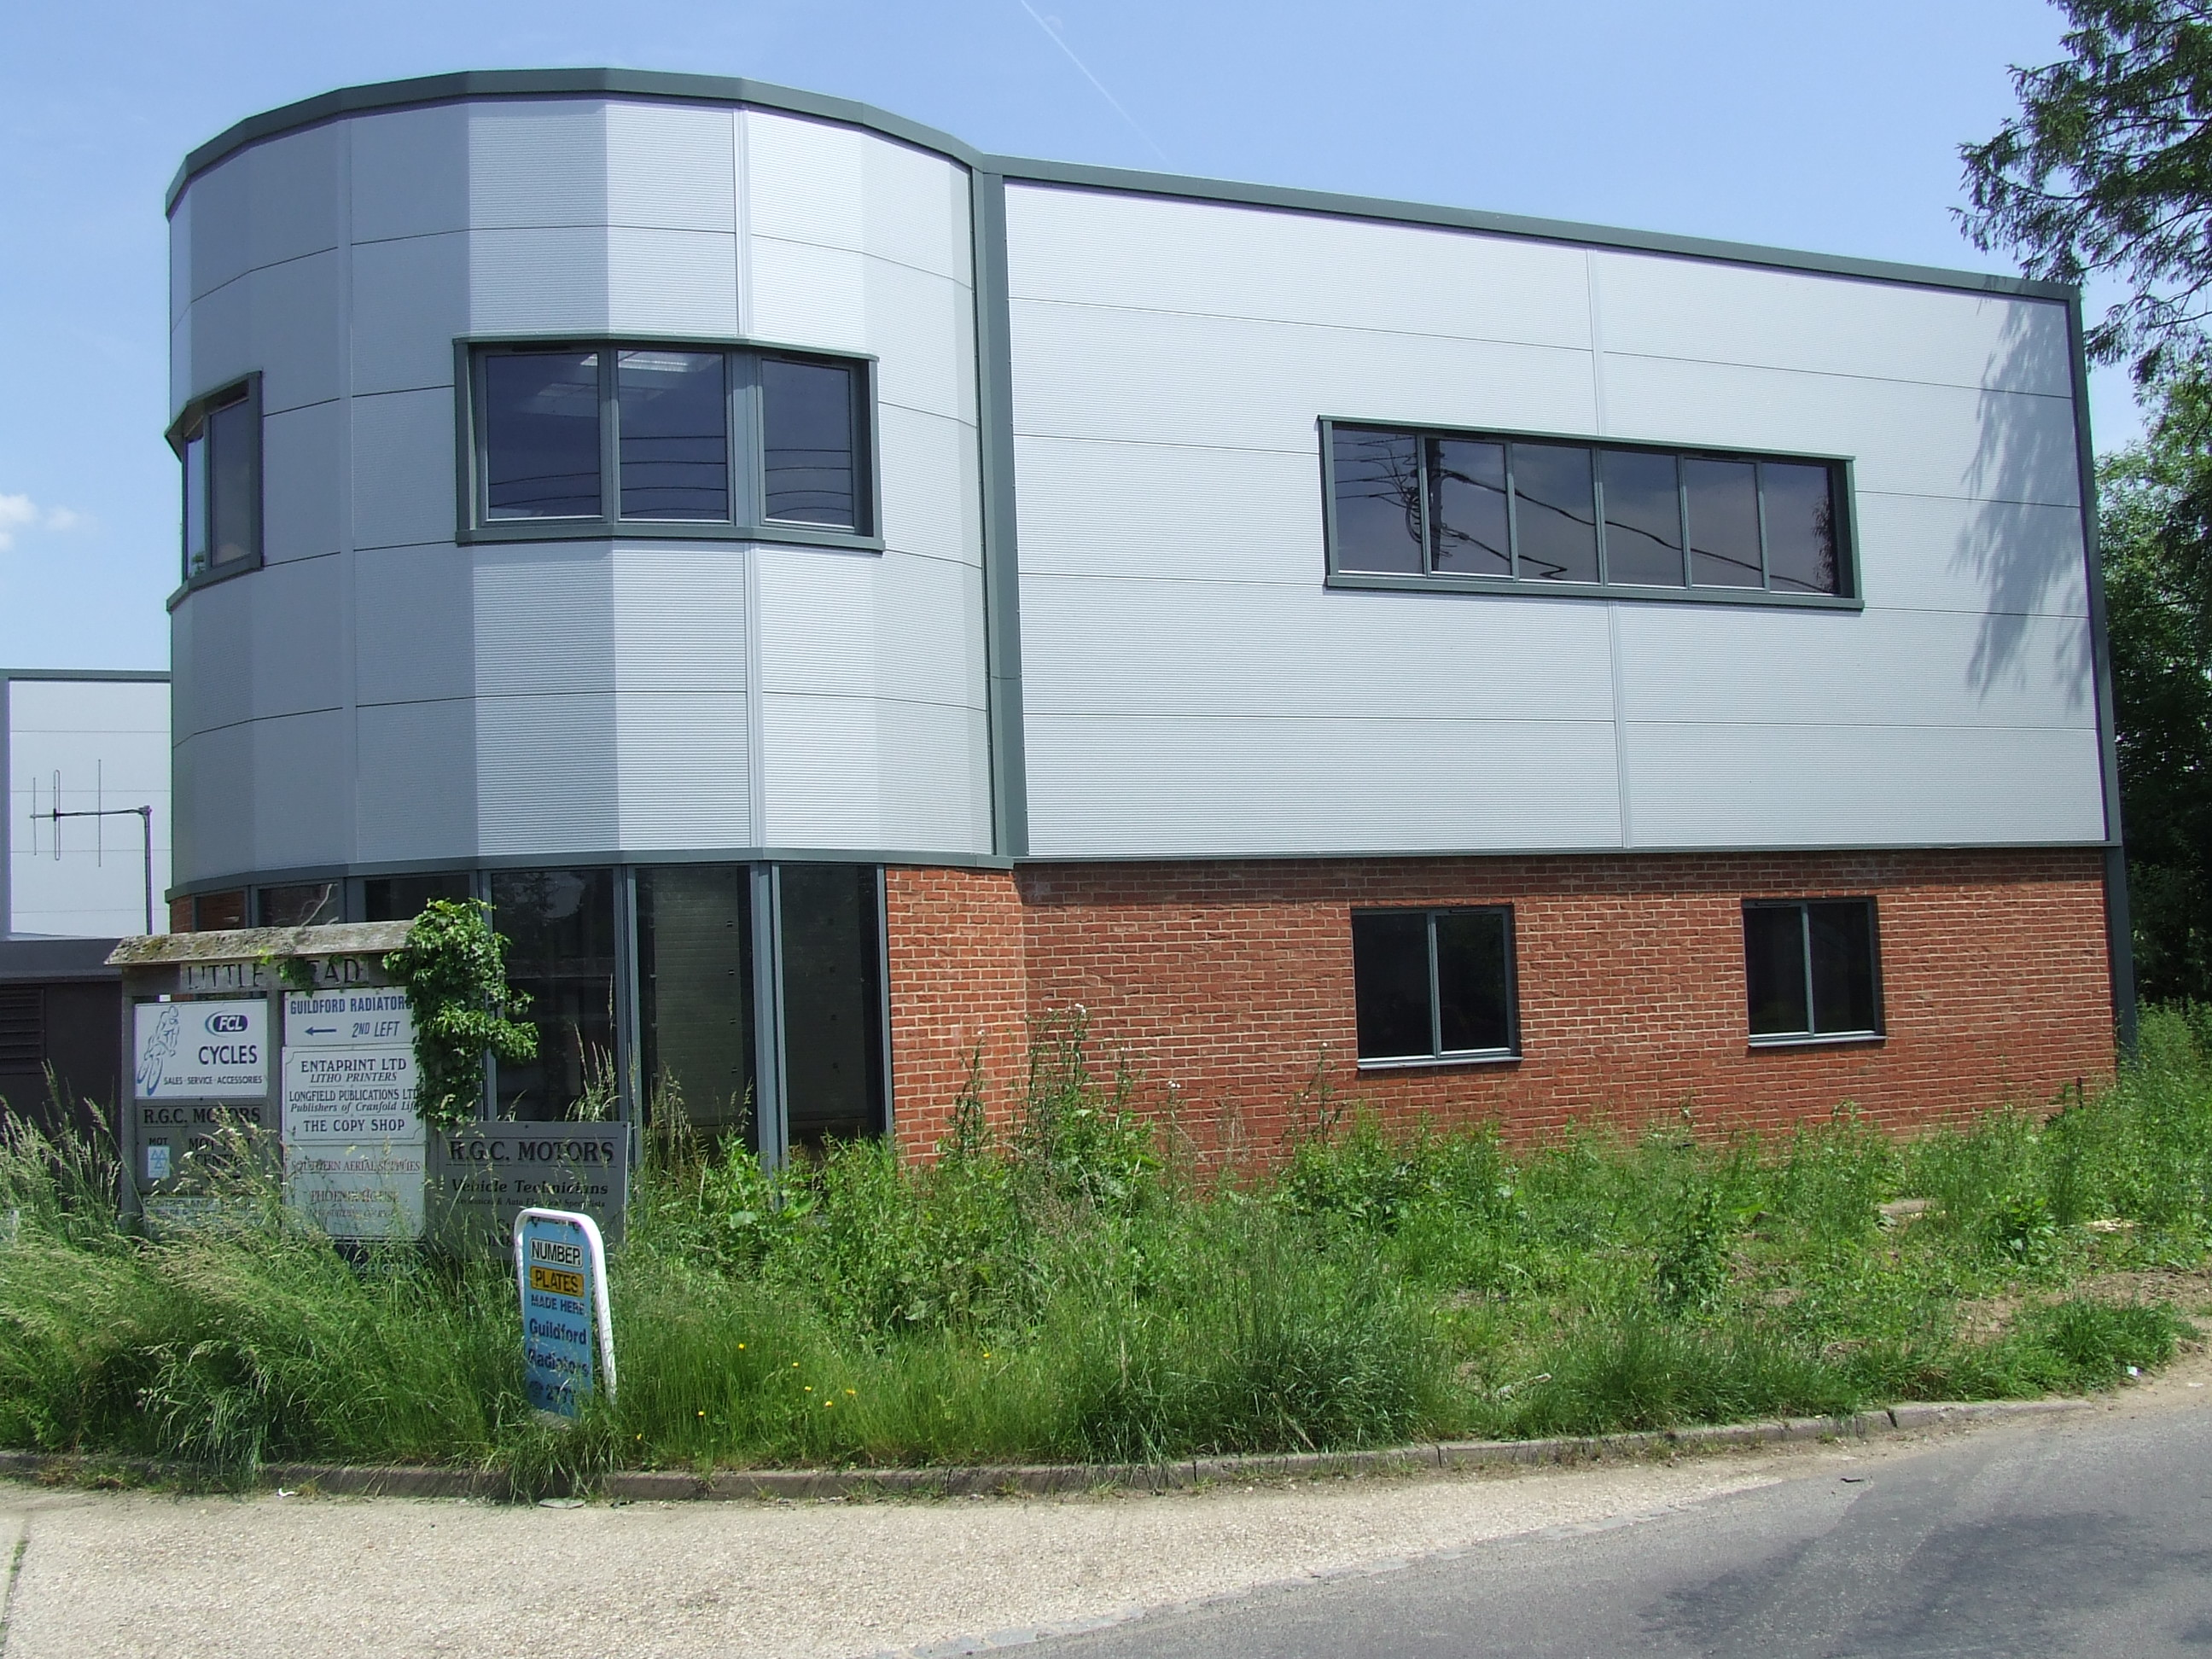 UNIT 7 WILLIAMS COURT, Littlemead Industrial Estate, CRANLEIGH - SOLD